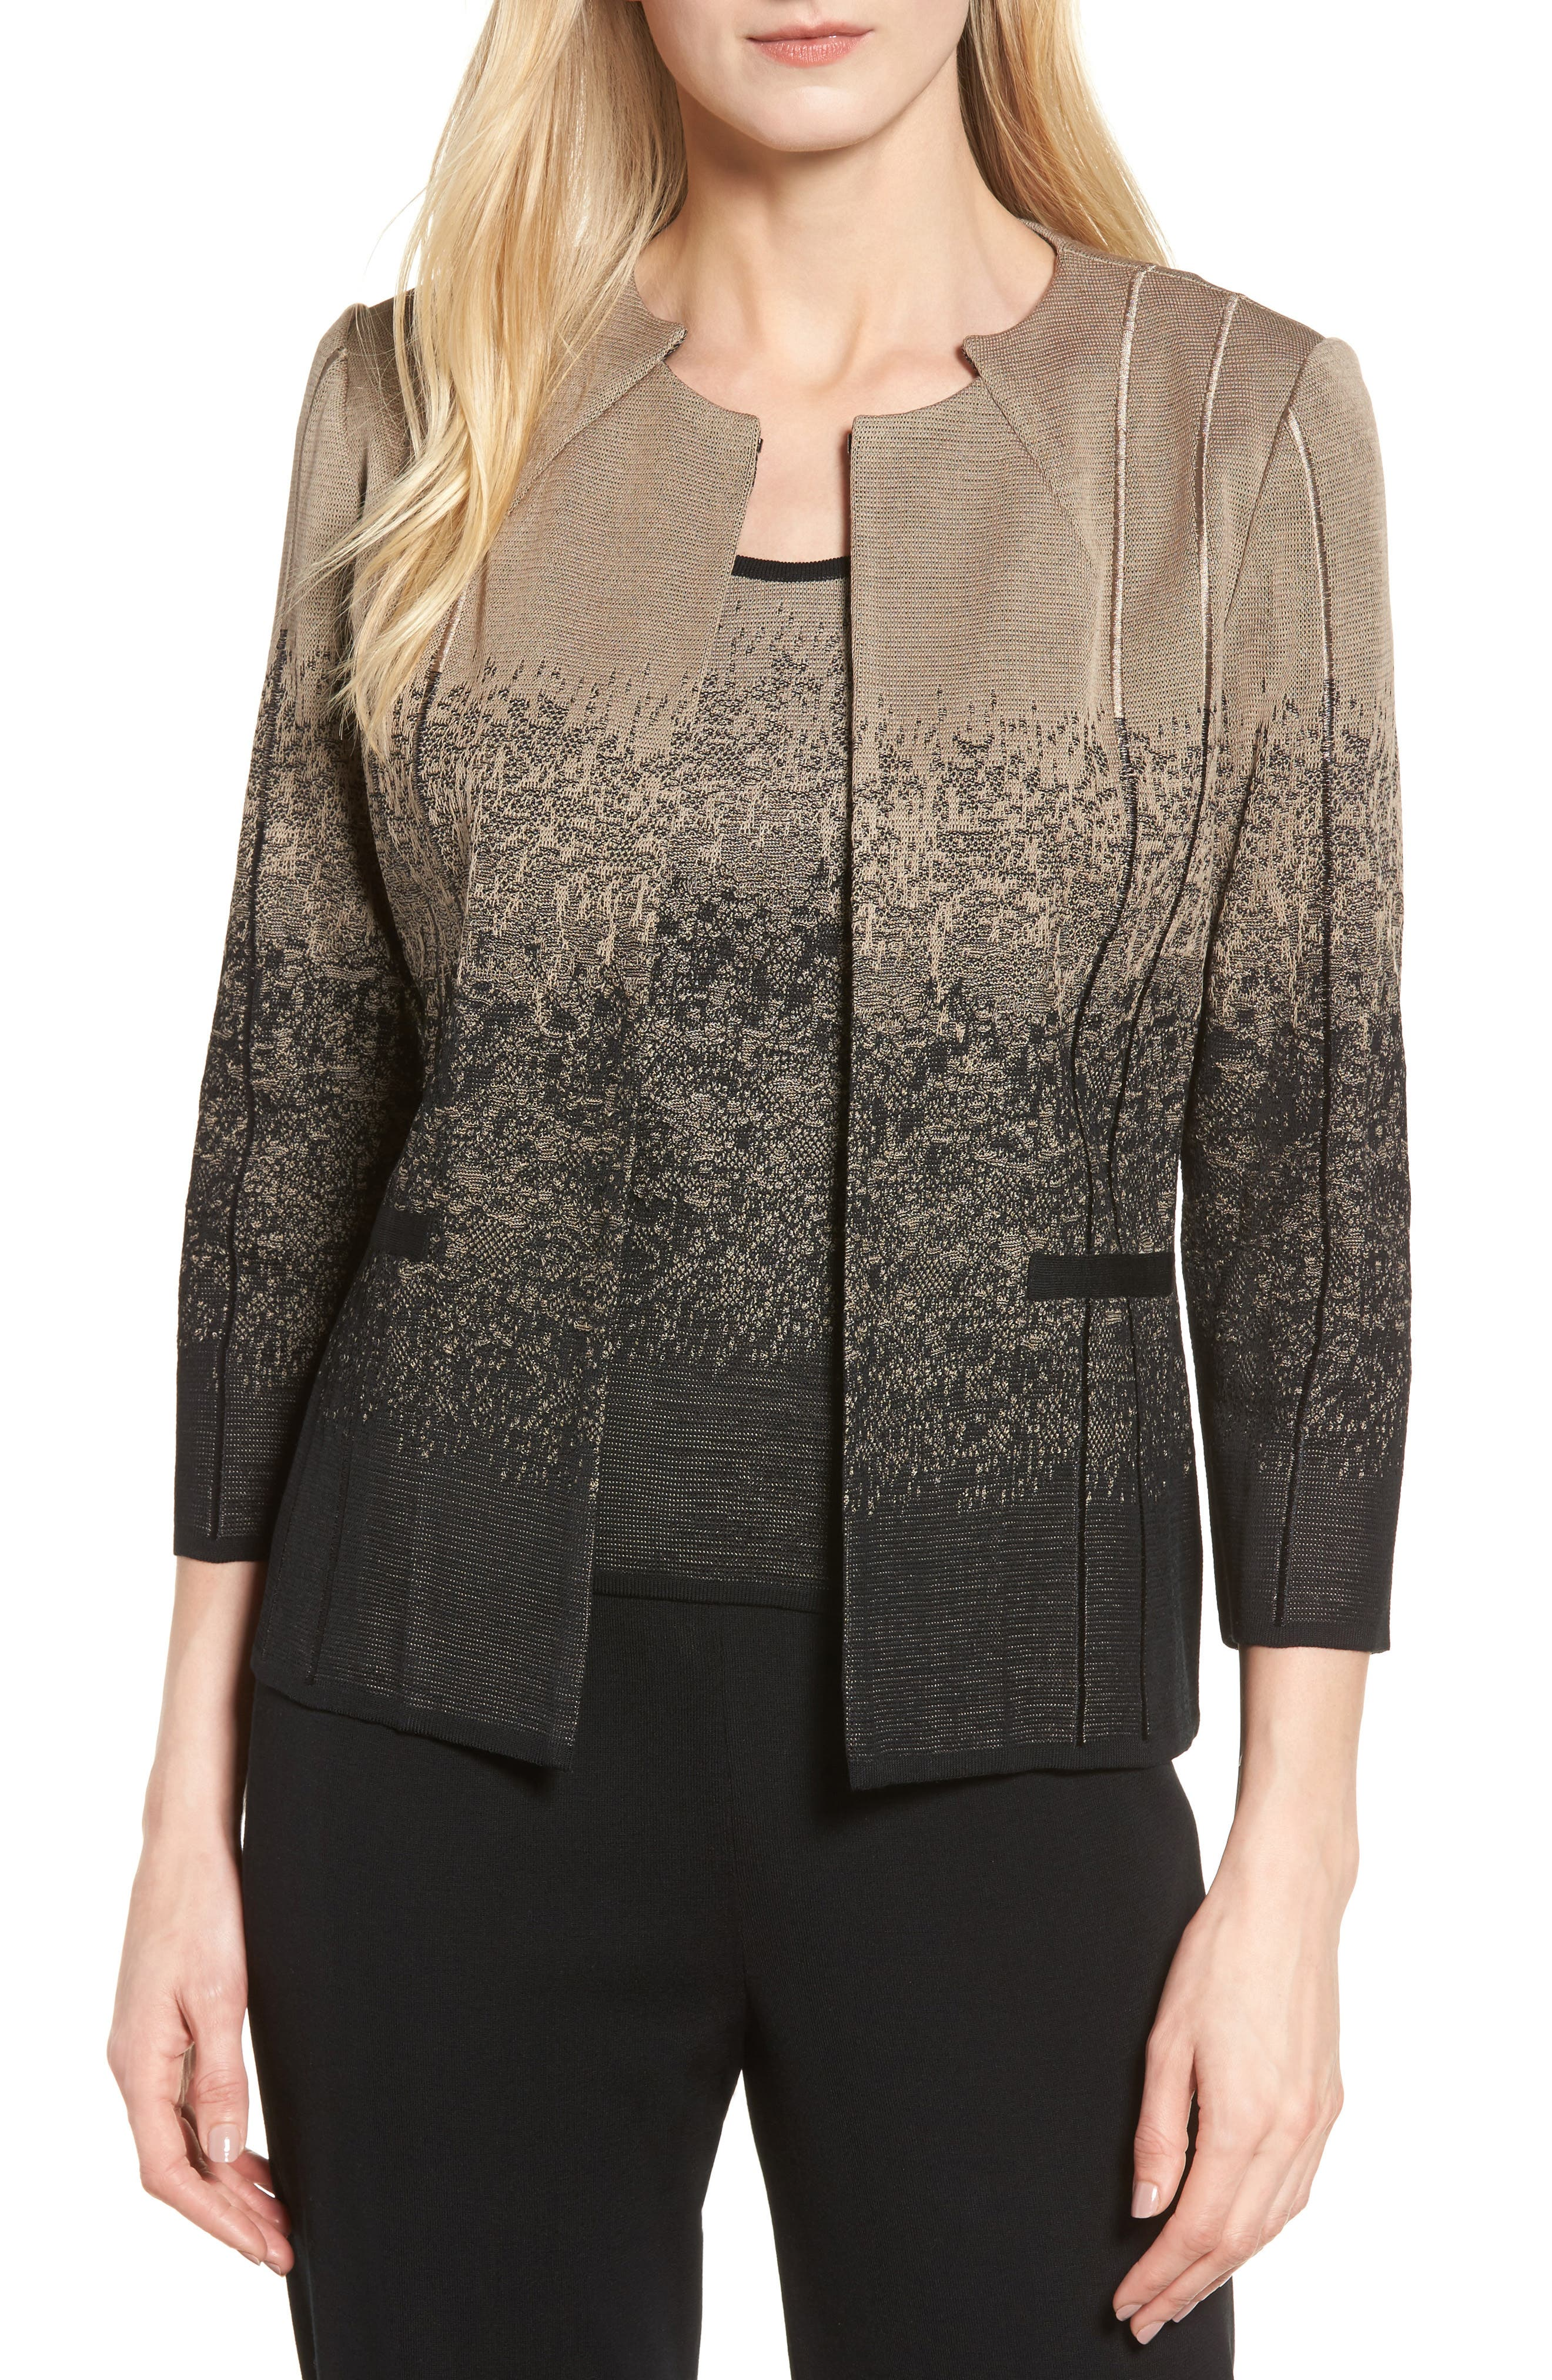 Jacquard Knit Jacket,                         Main,                         color, 250